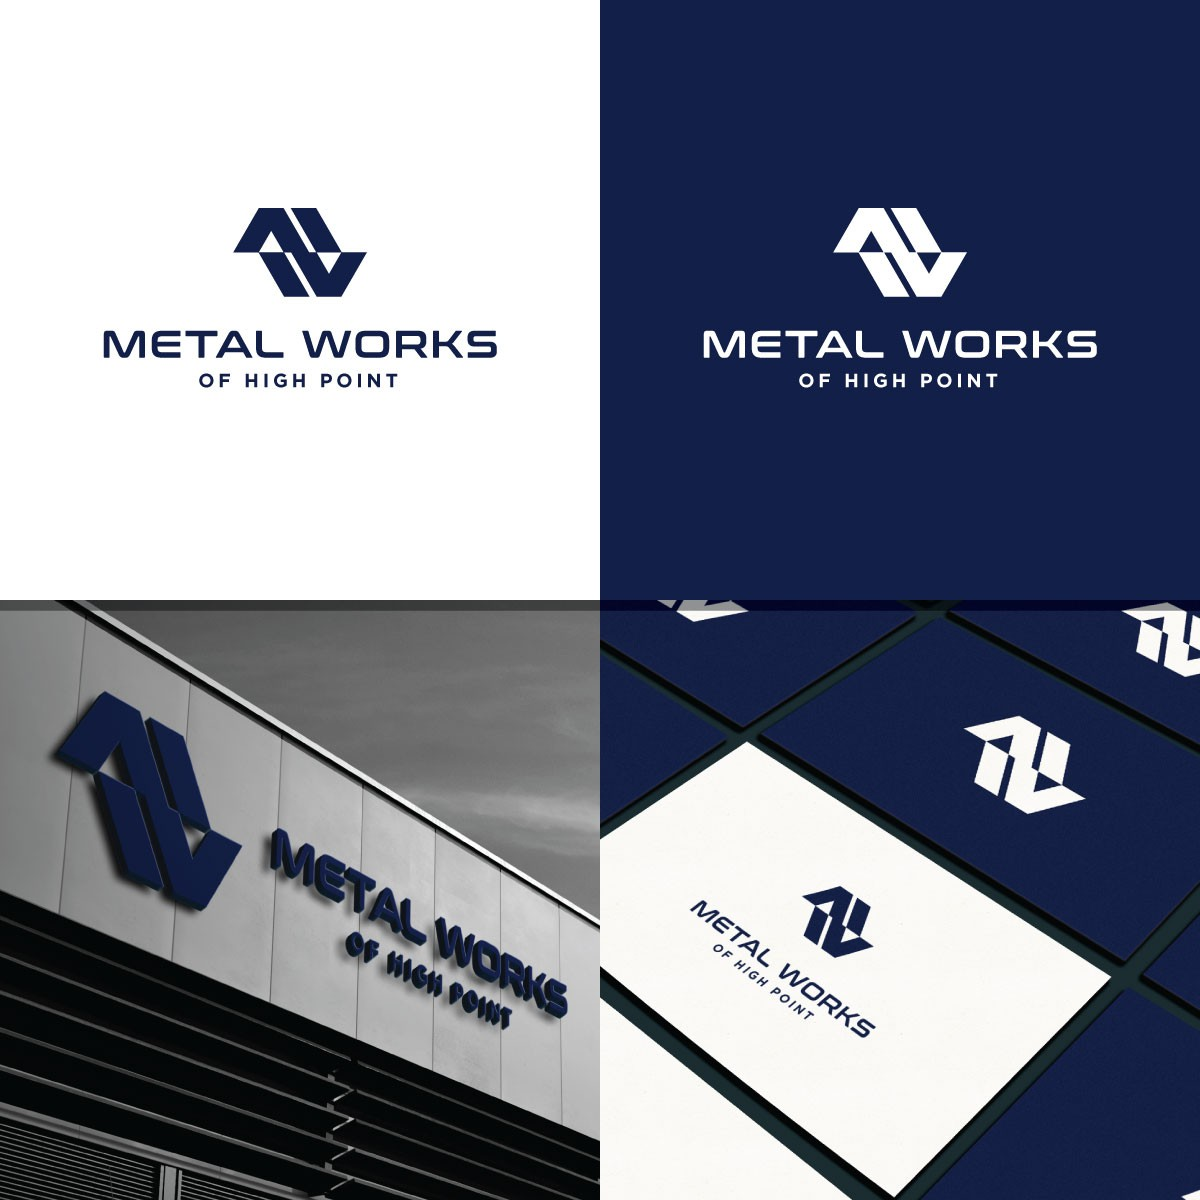 Eye Catching new logo for Metal Works of High Point